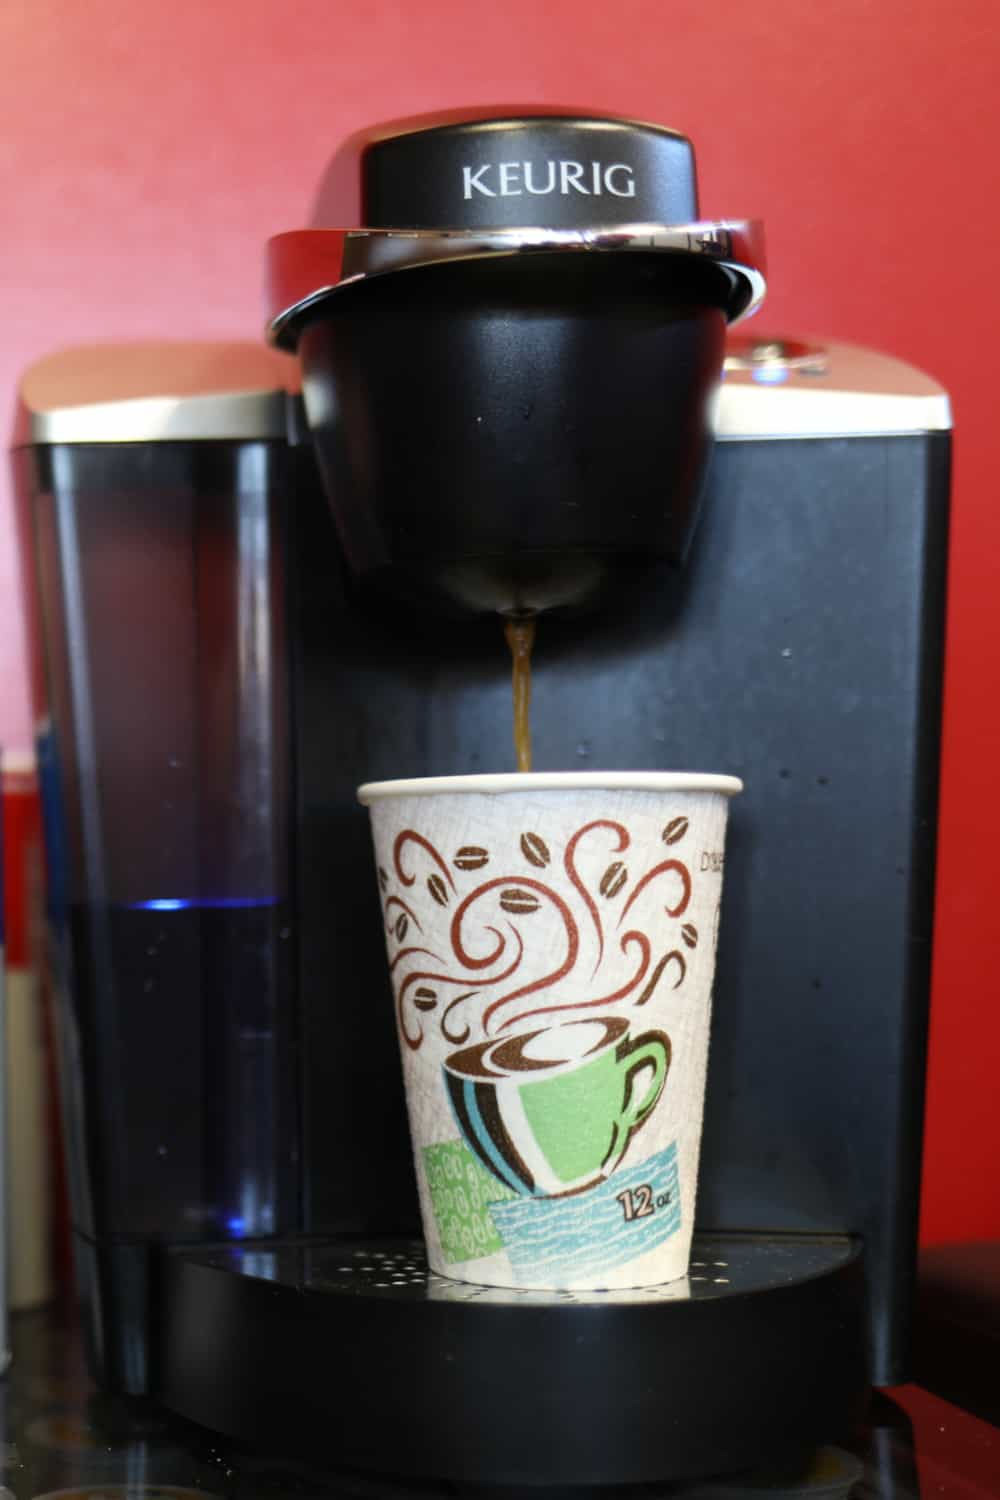 How to get the best from your Keurig